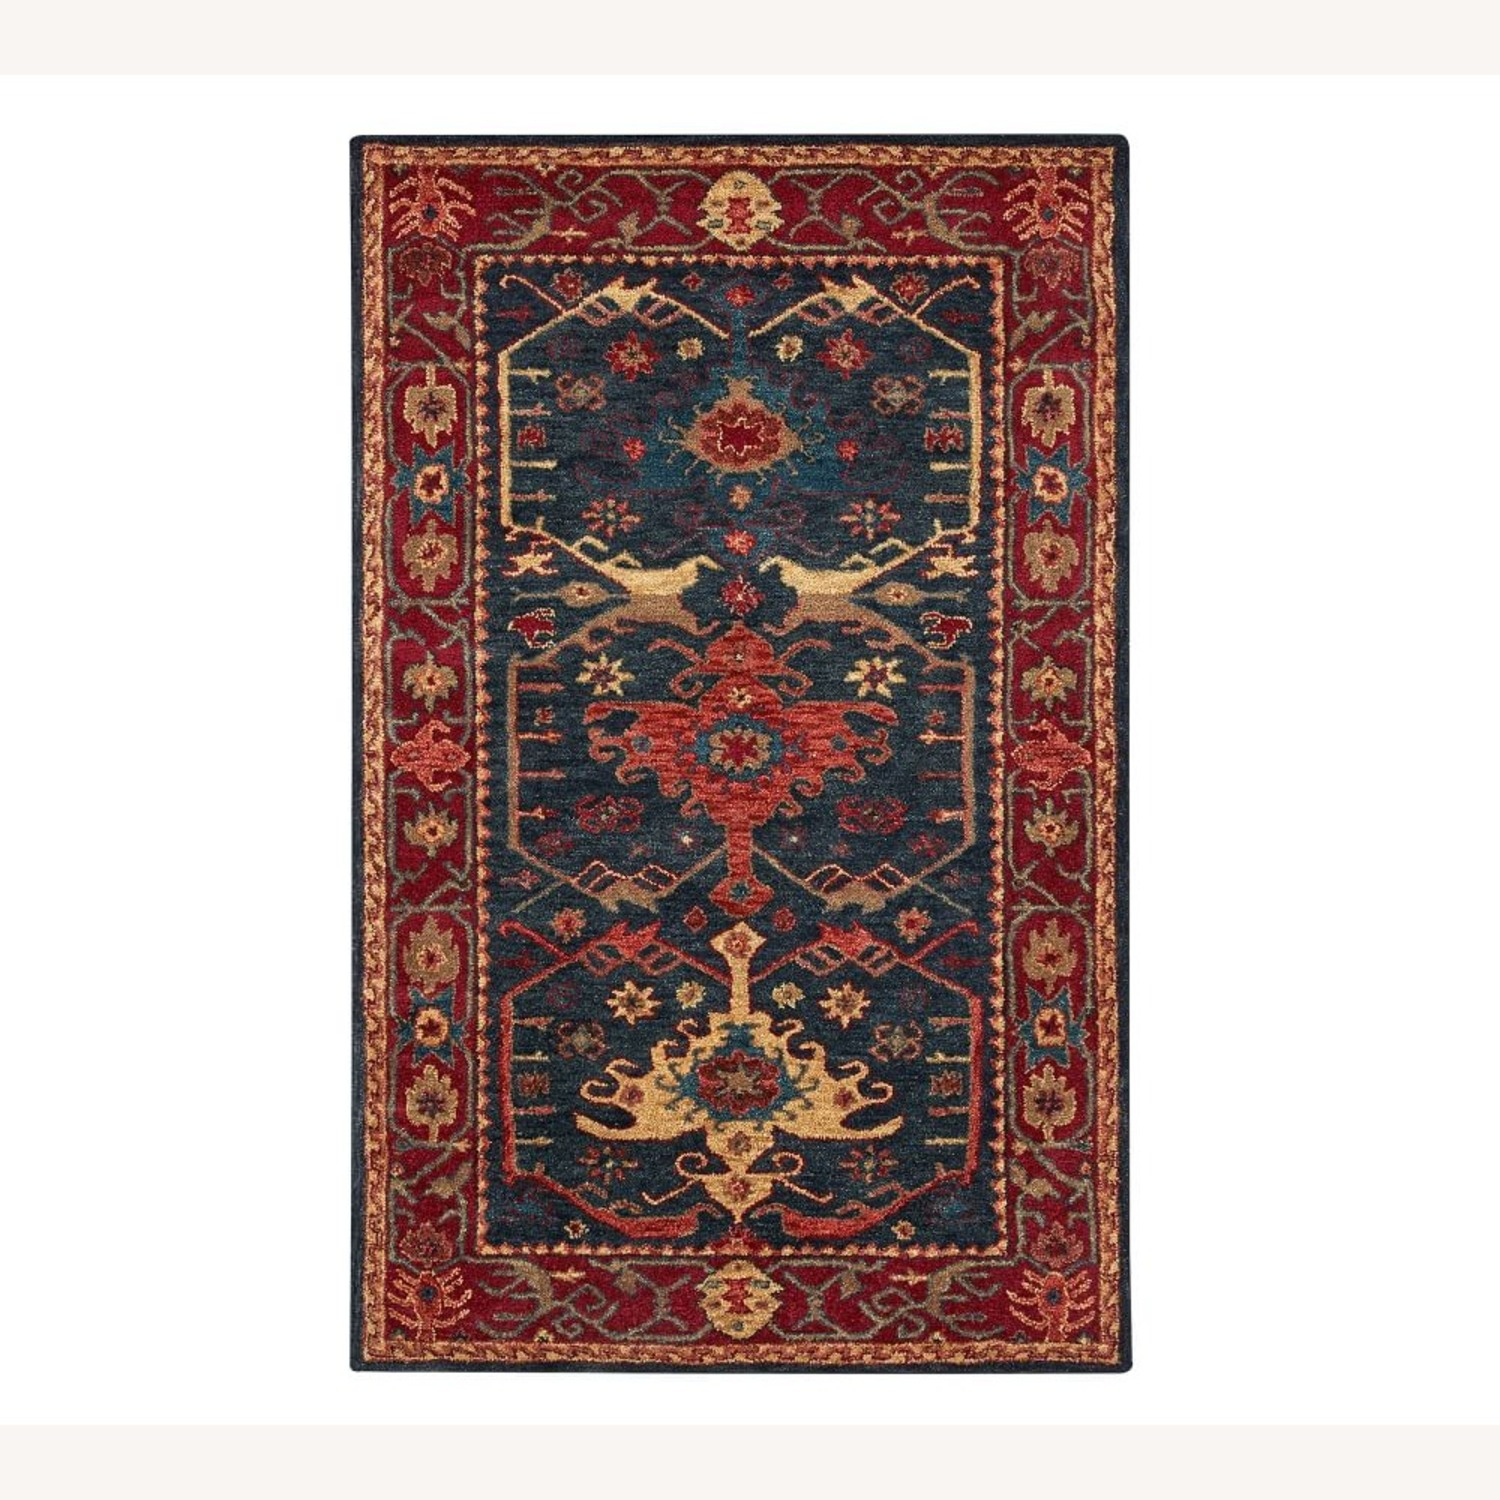 Pottery Barn Channing Persian-Style Hand Rug - image-3